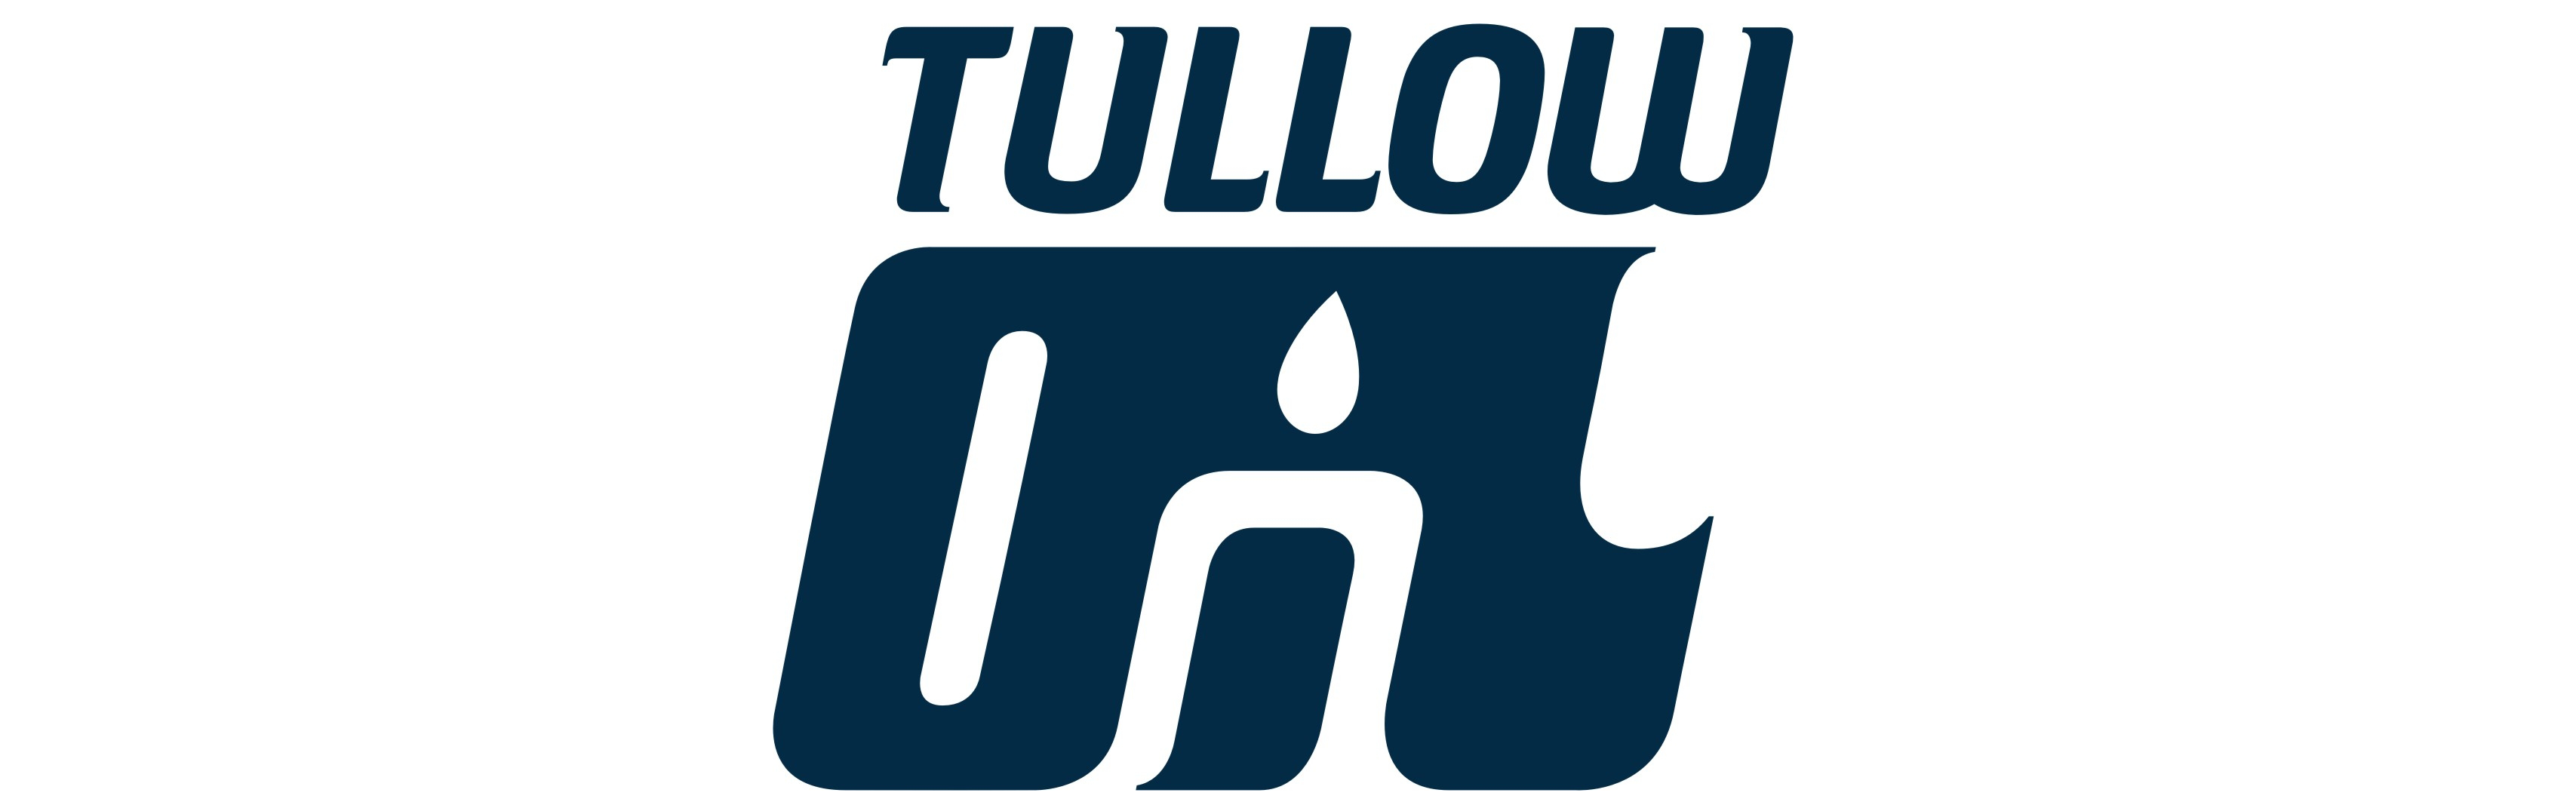 Tullow Oil company logo